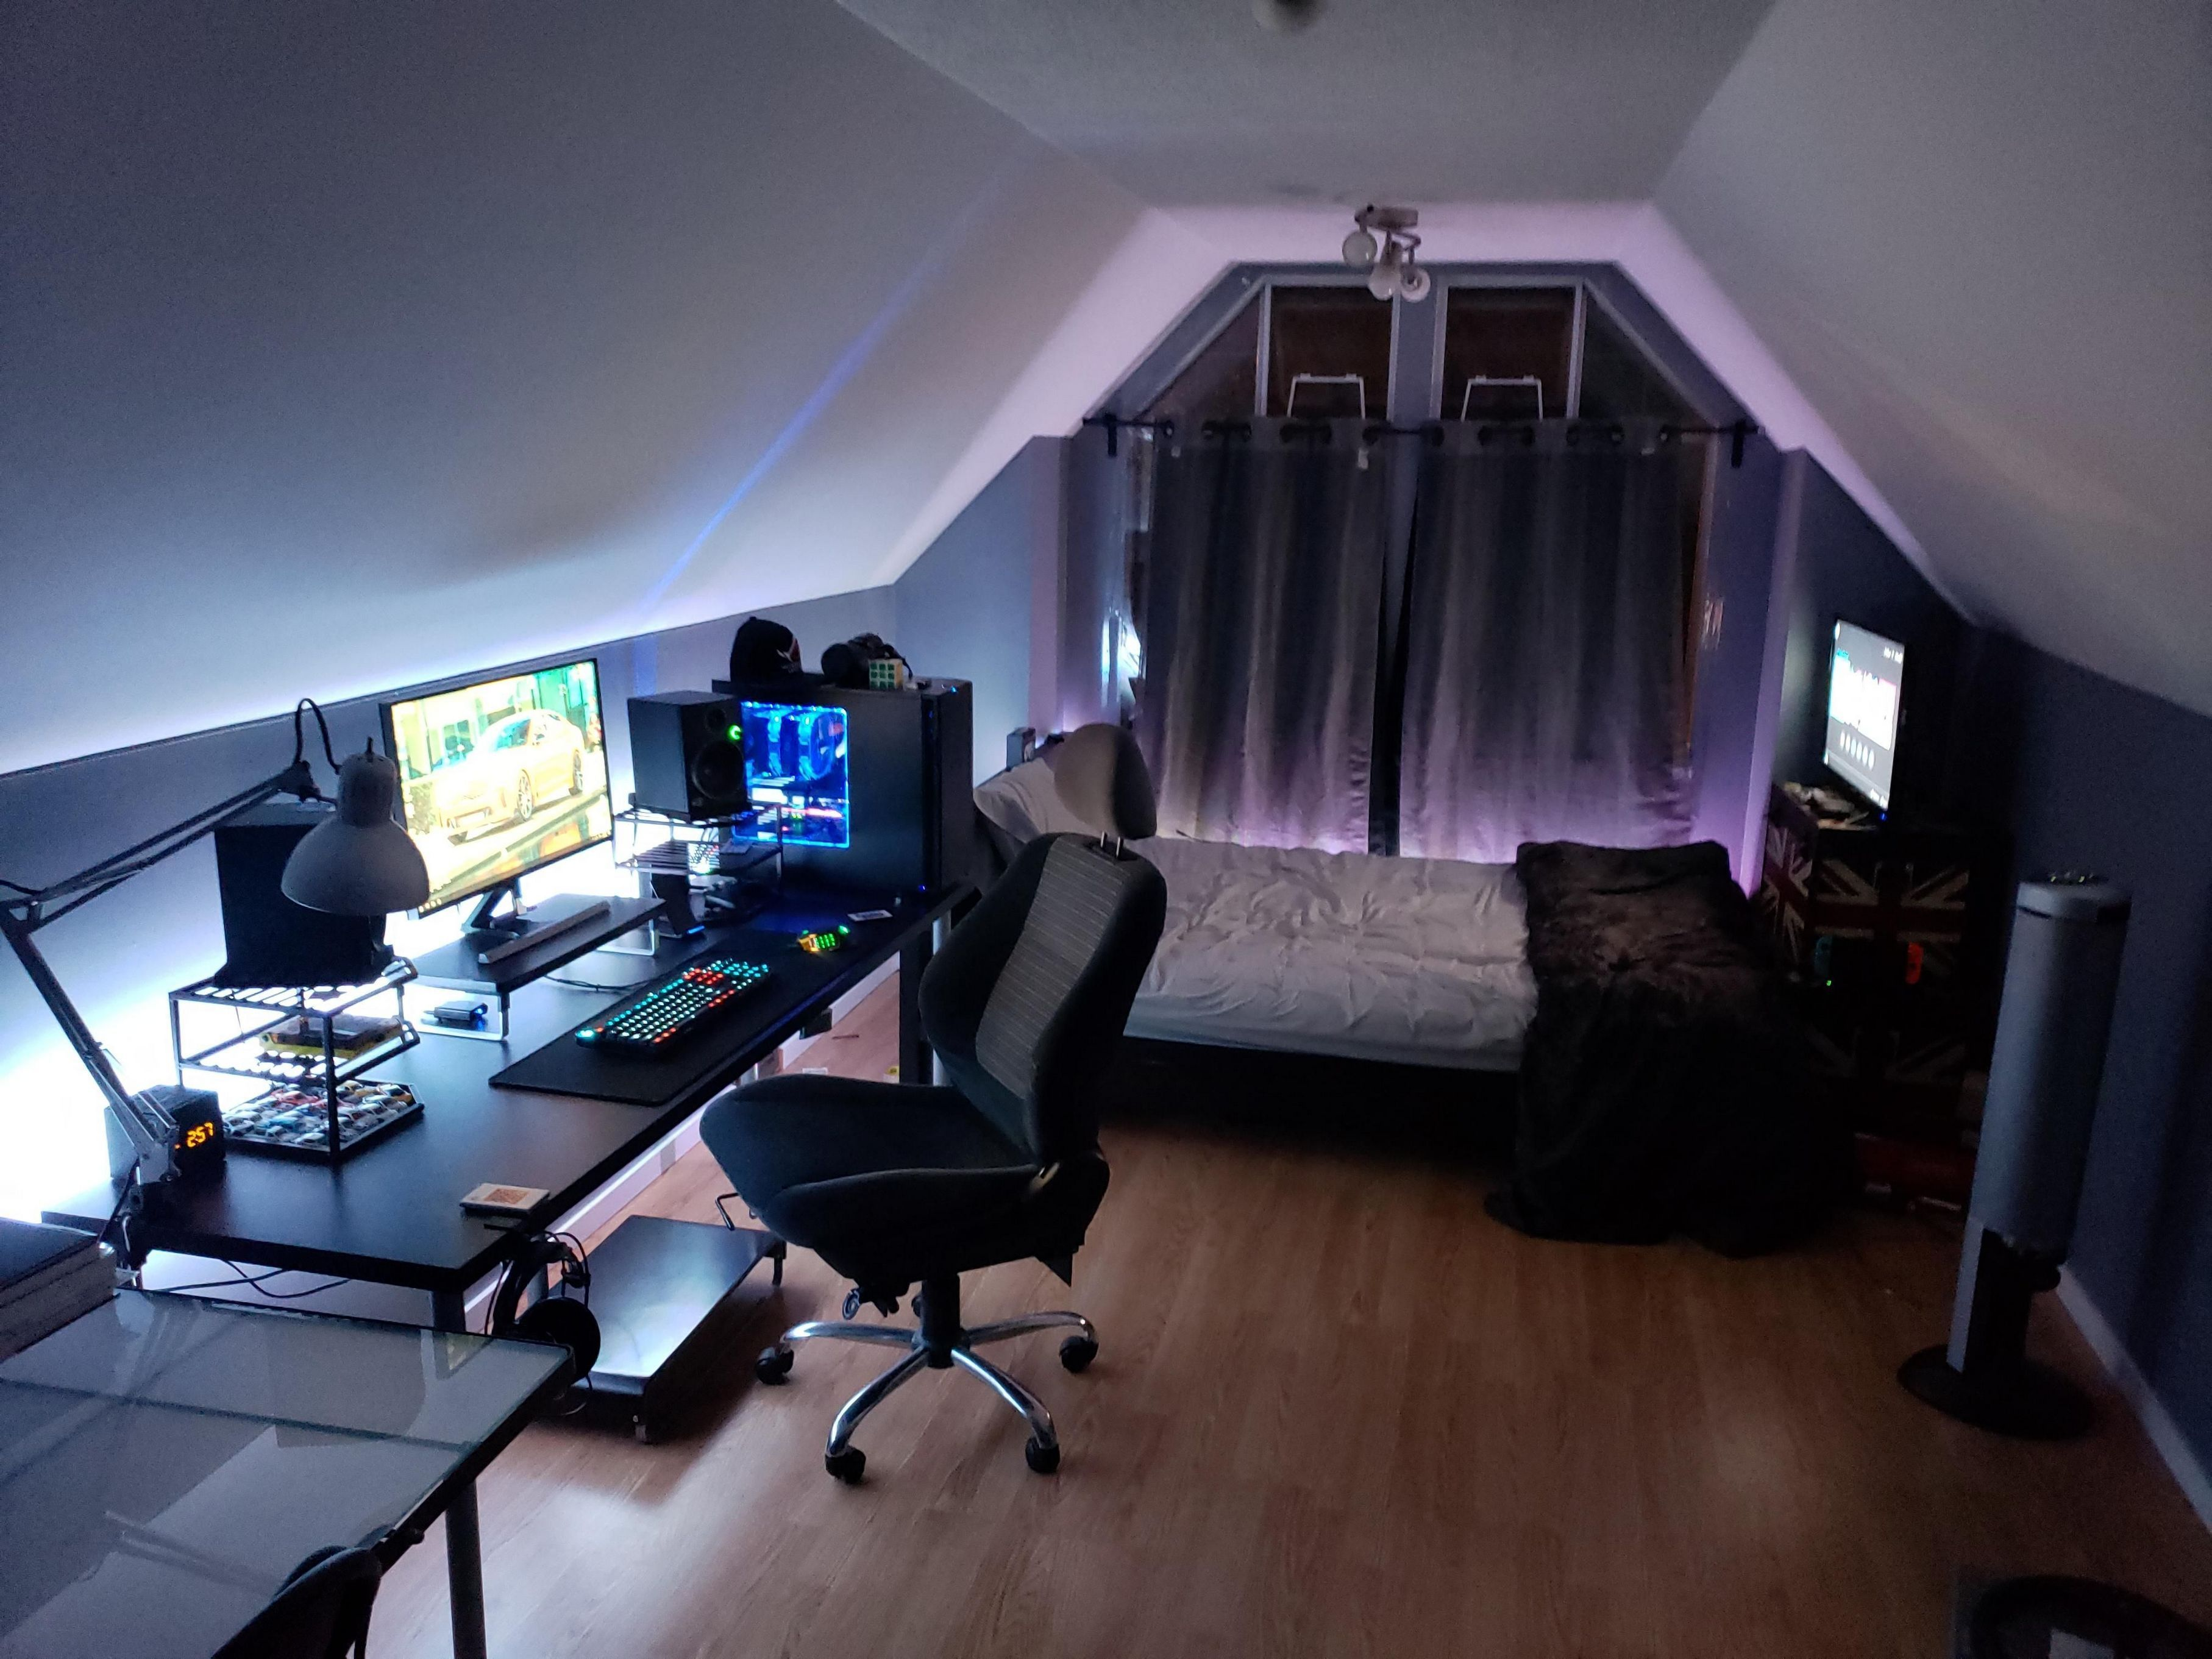 If You Receive Hot With Three Other Folks In The Room Problem Solved In This Way People Have Sufficient Room To Bedroom Setup Room Setup Small Game Rooms